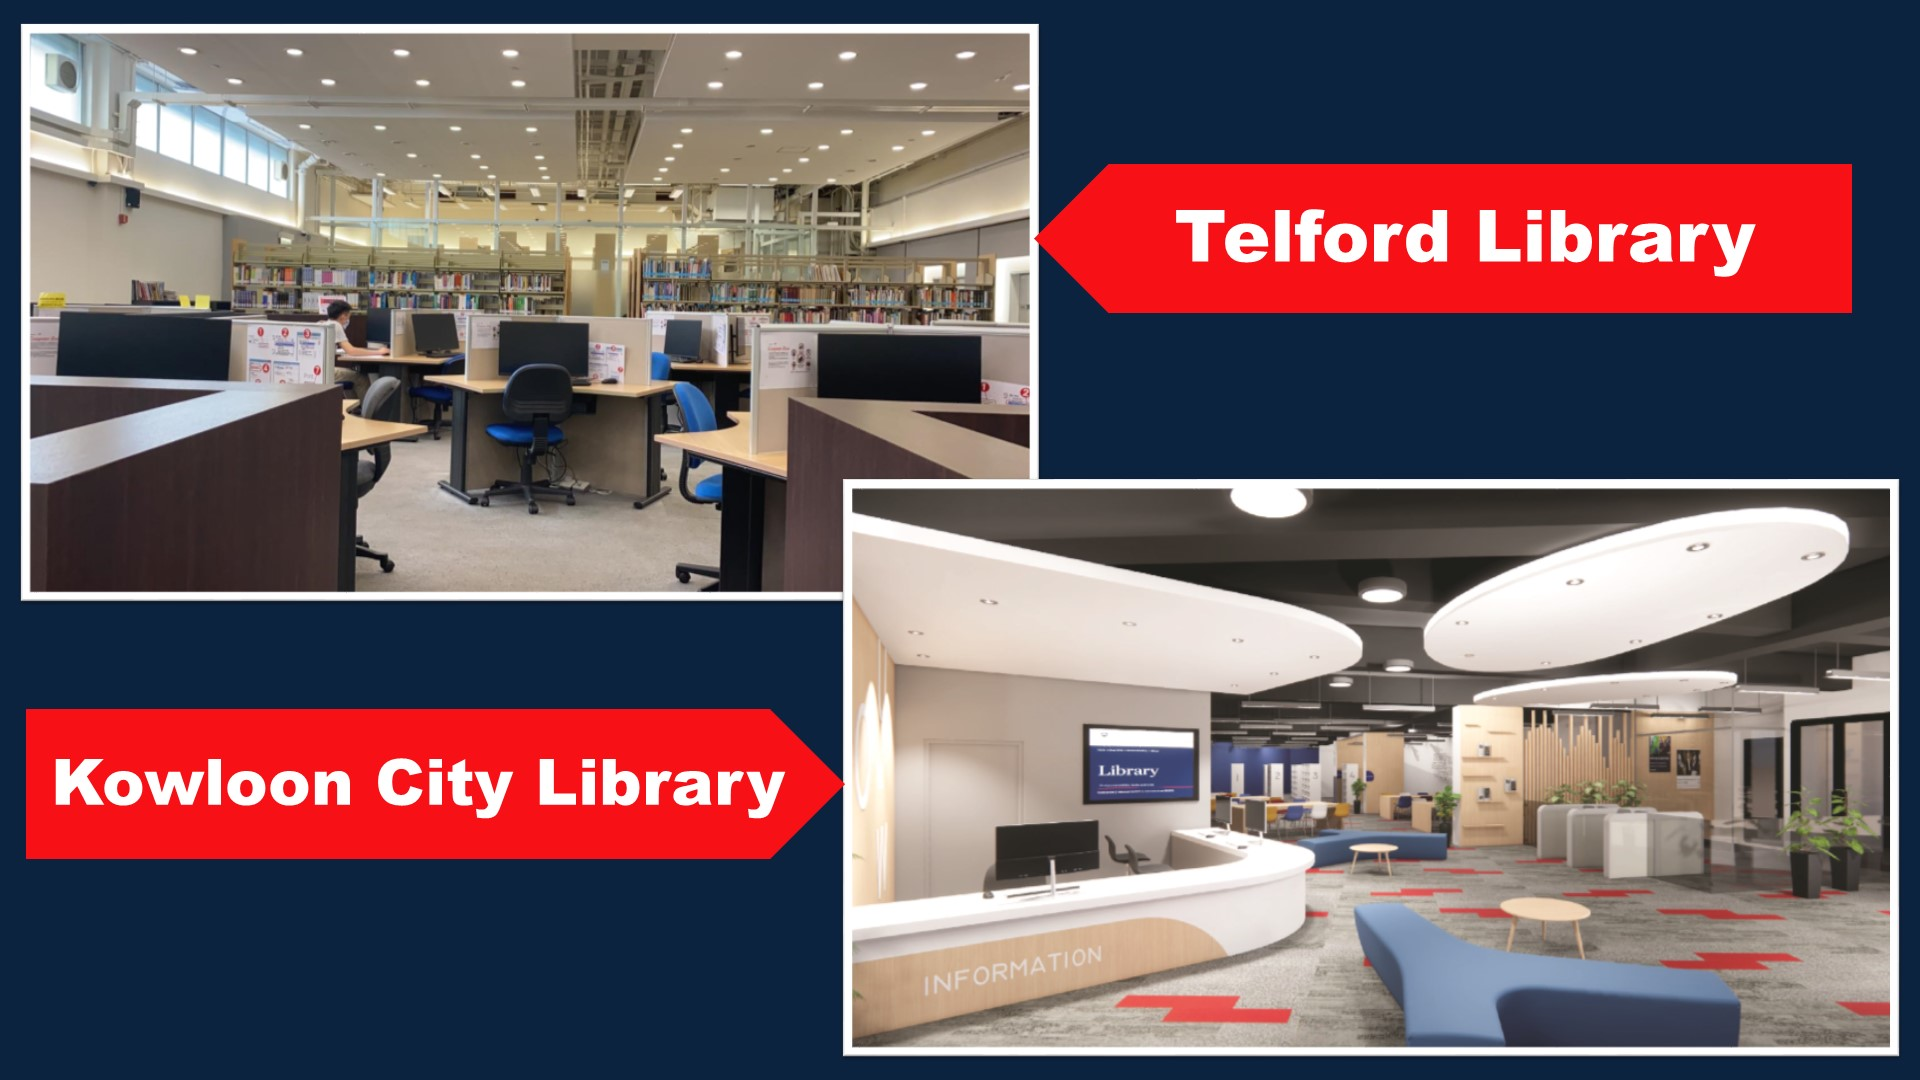 Photos of study spaces at Telford and Kowloon libraries.